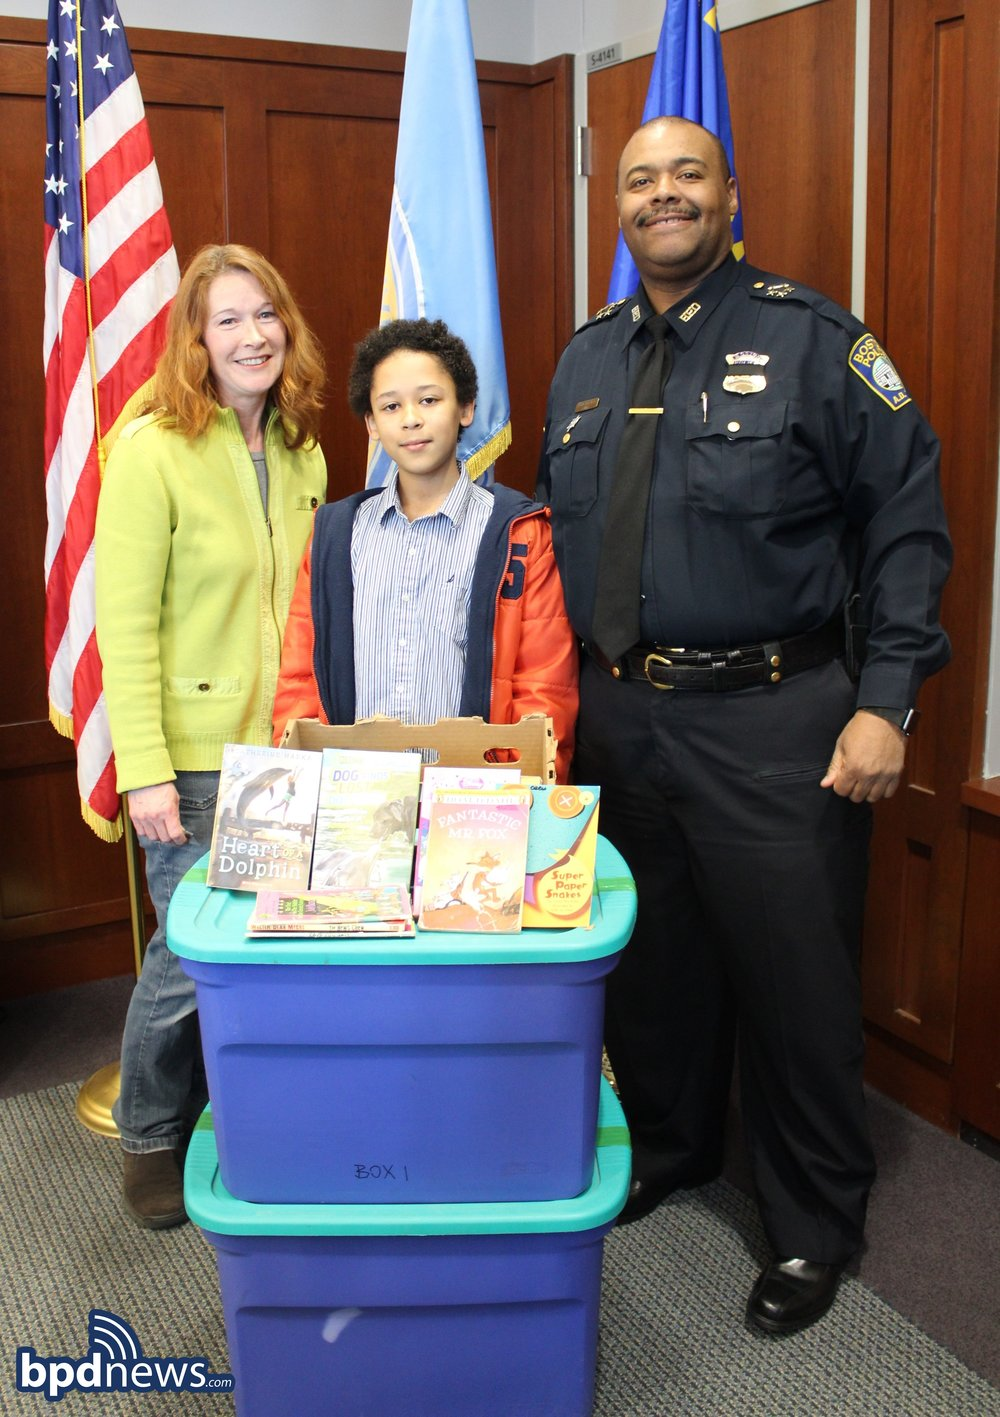 Henry with his Mom and Chief Gross, who accepted the books on behalf of the BPD